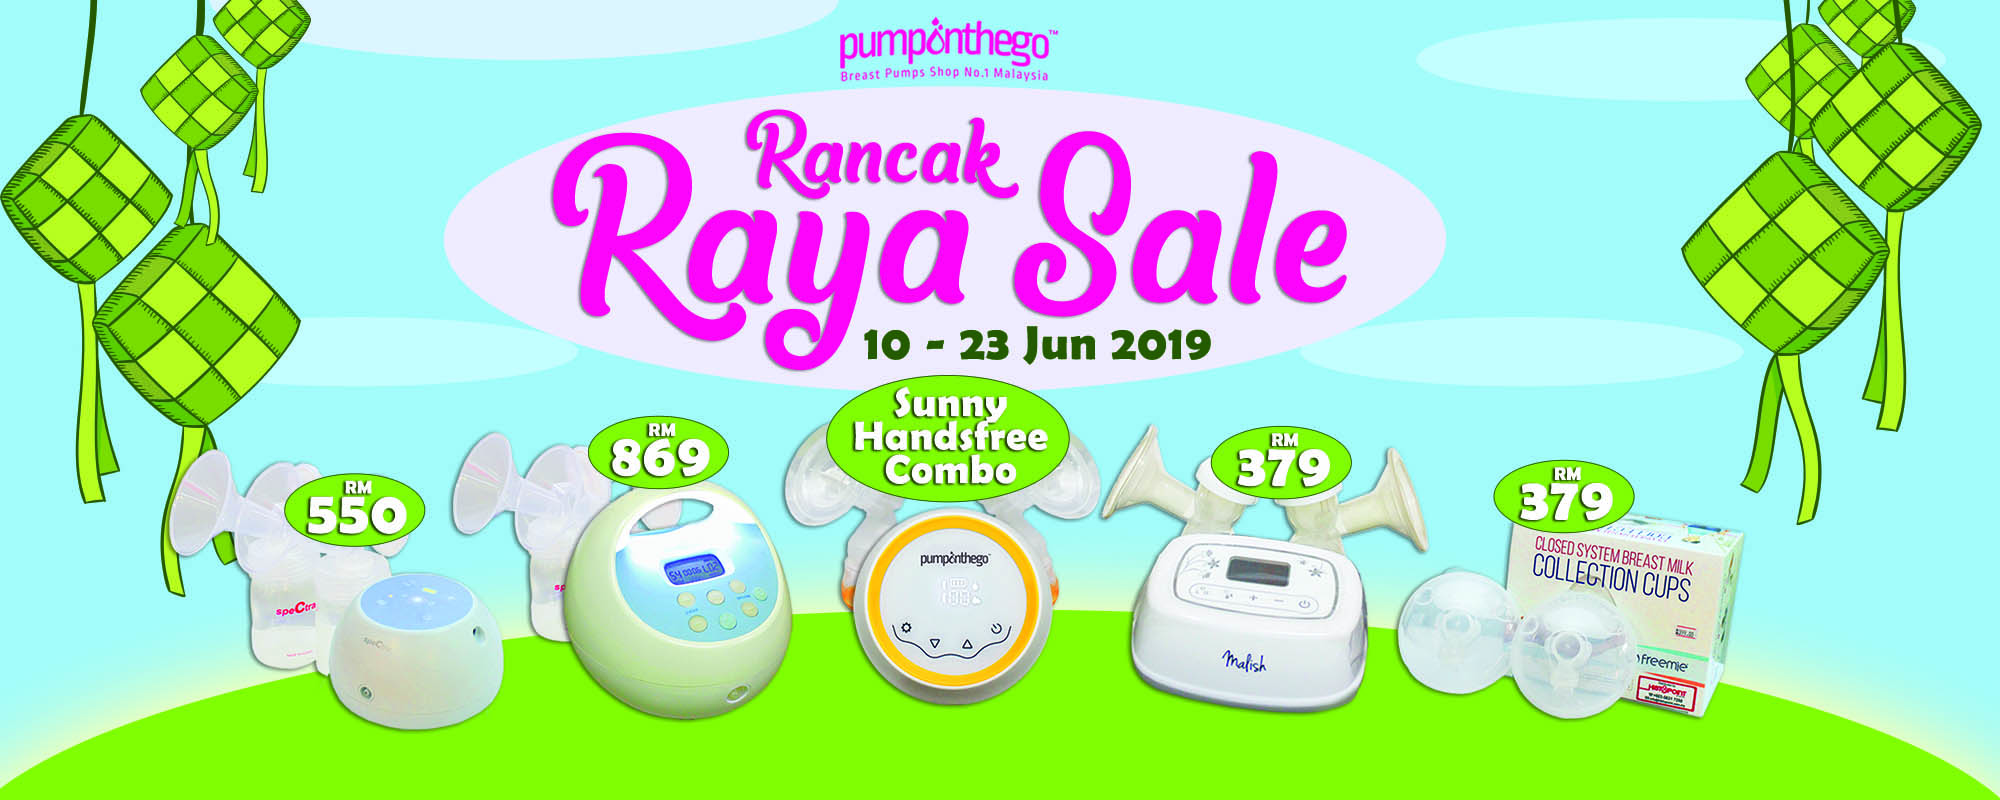 PumpOnTheGo Rancak Raya Sale 2019